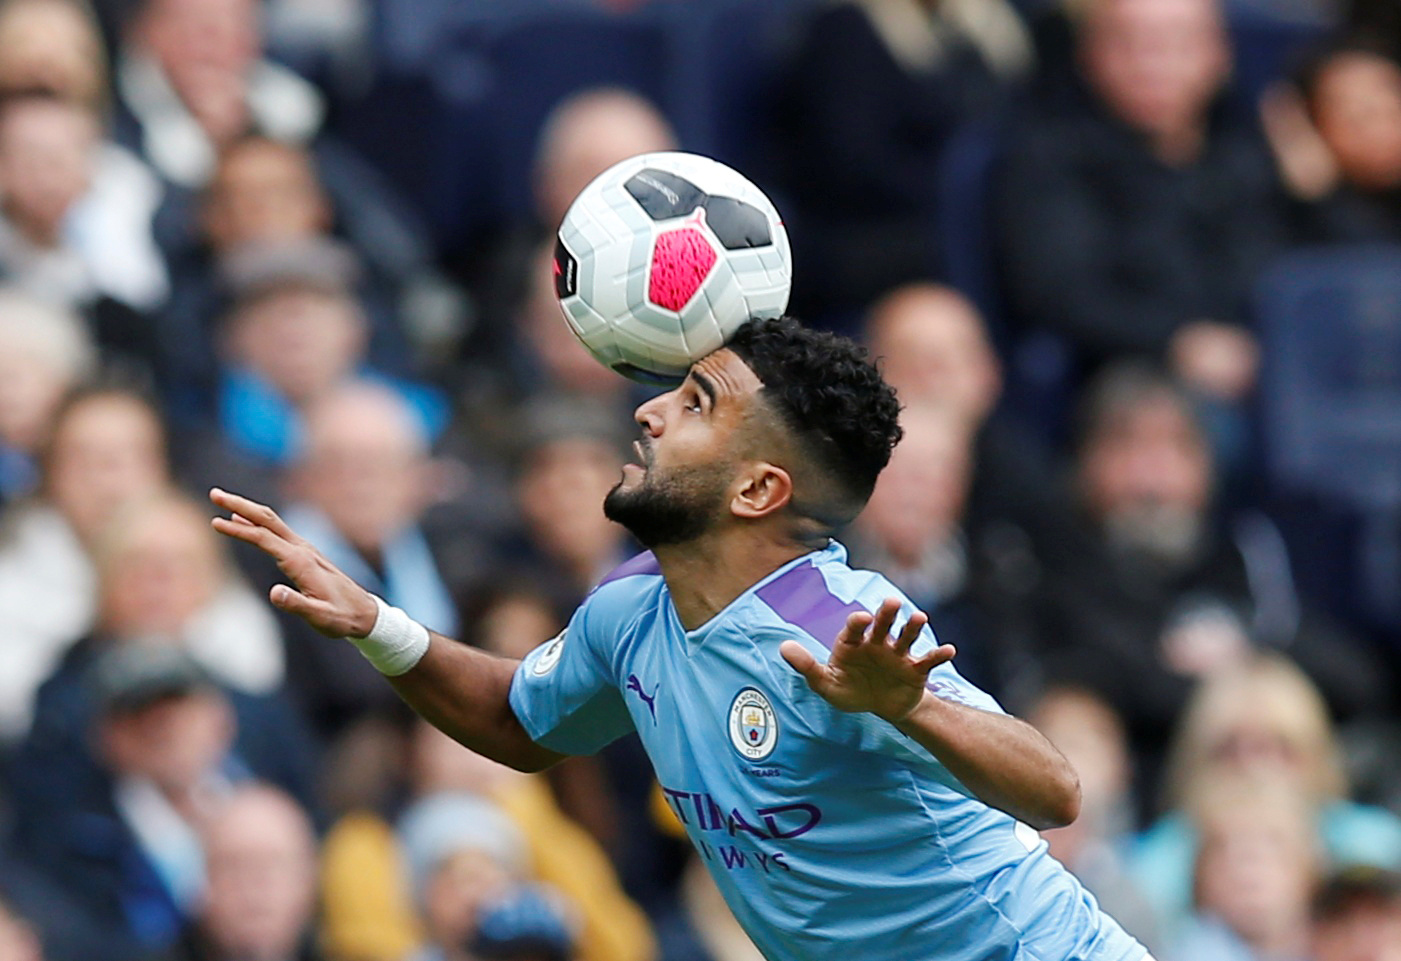 Manchester City: Riyad Mahrez posts training image on Instagram which could  please many supporters